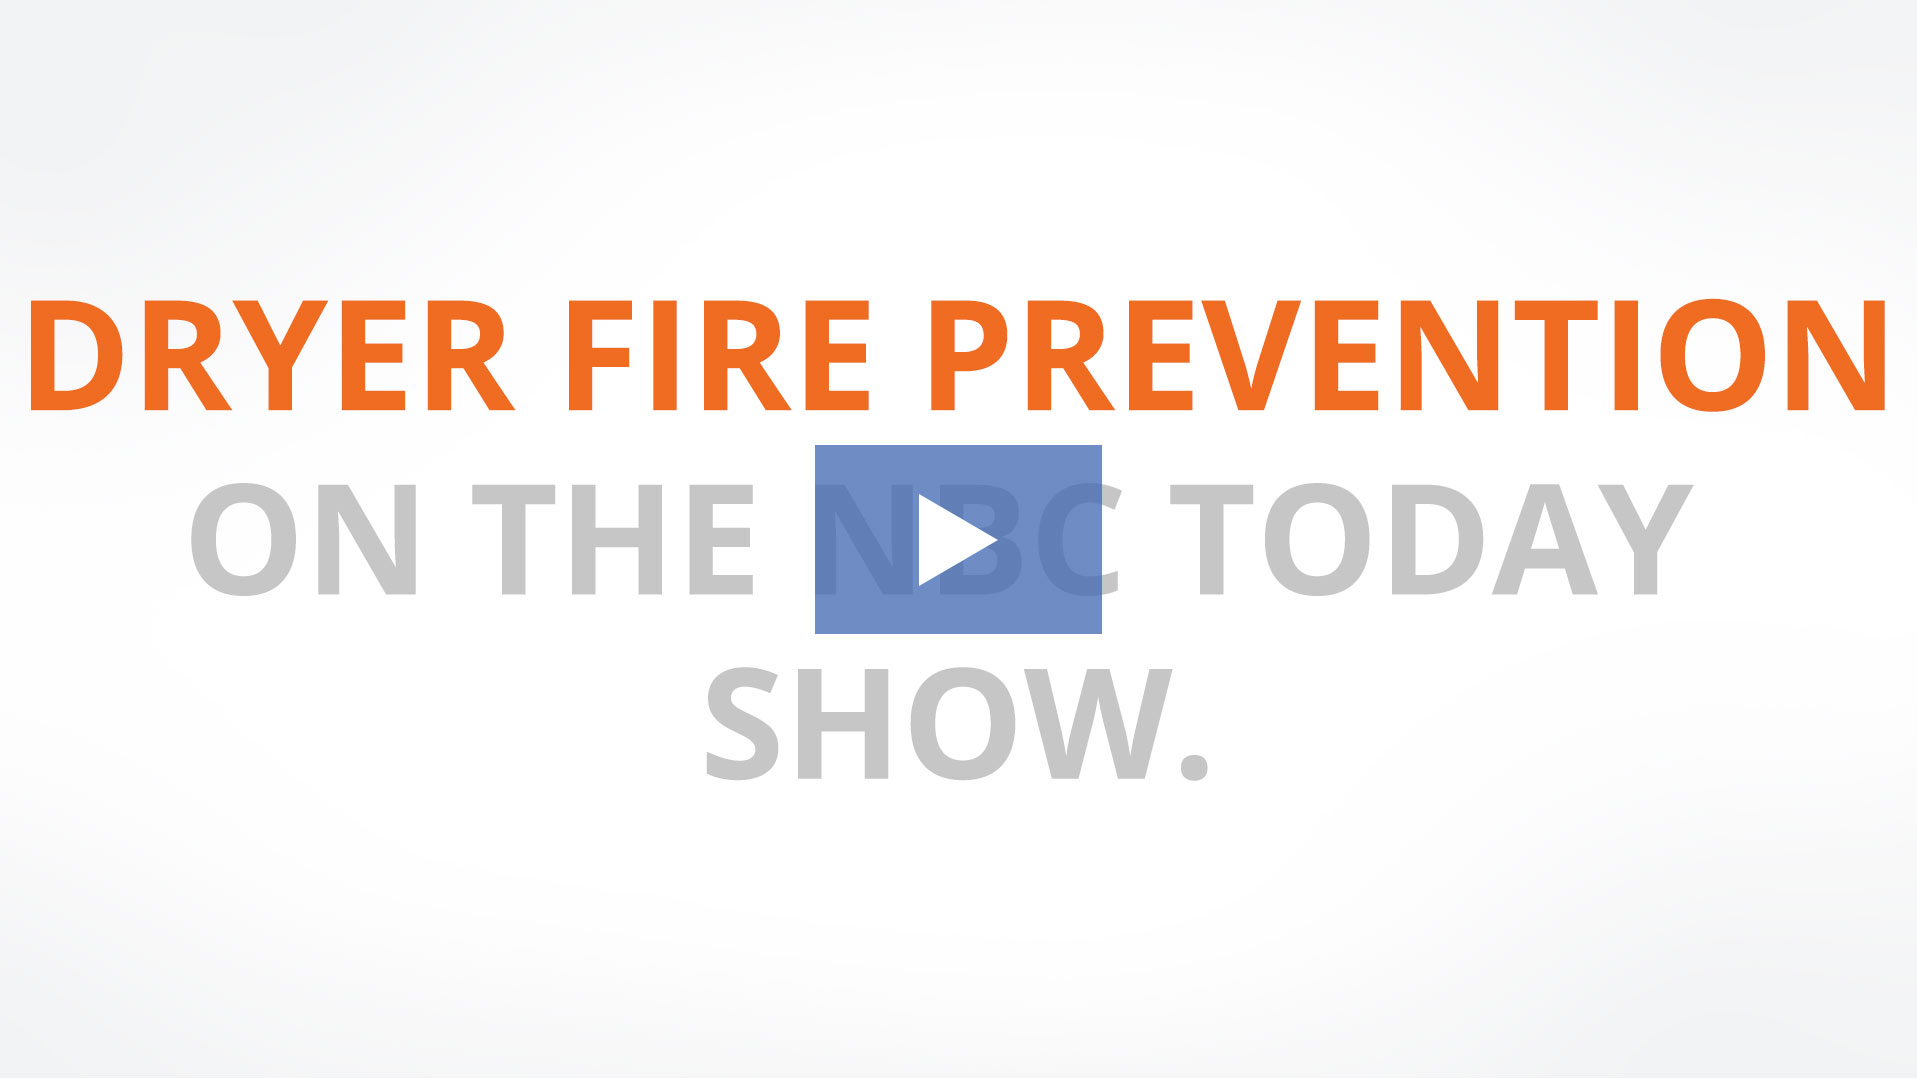 Video: Dyer Fire Prevention